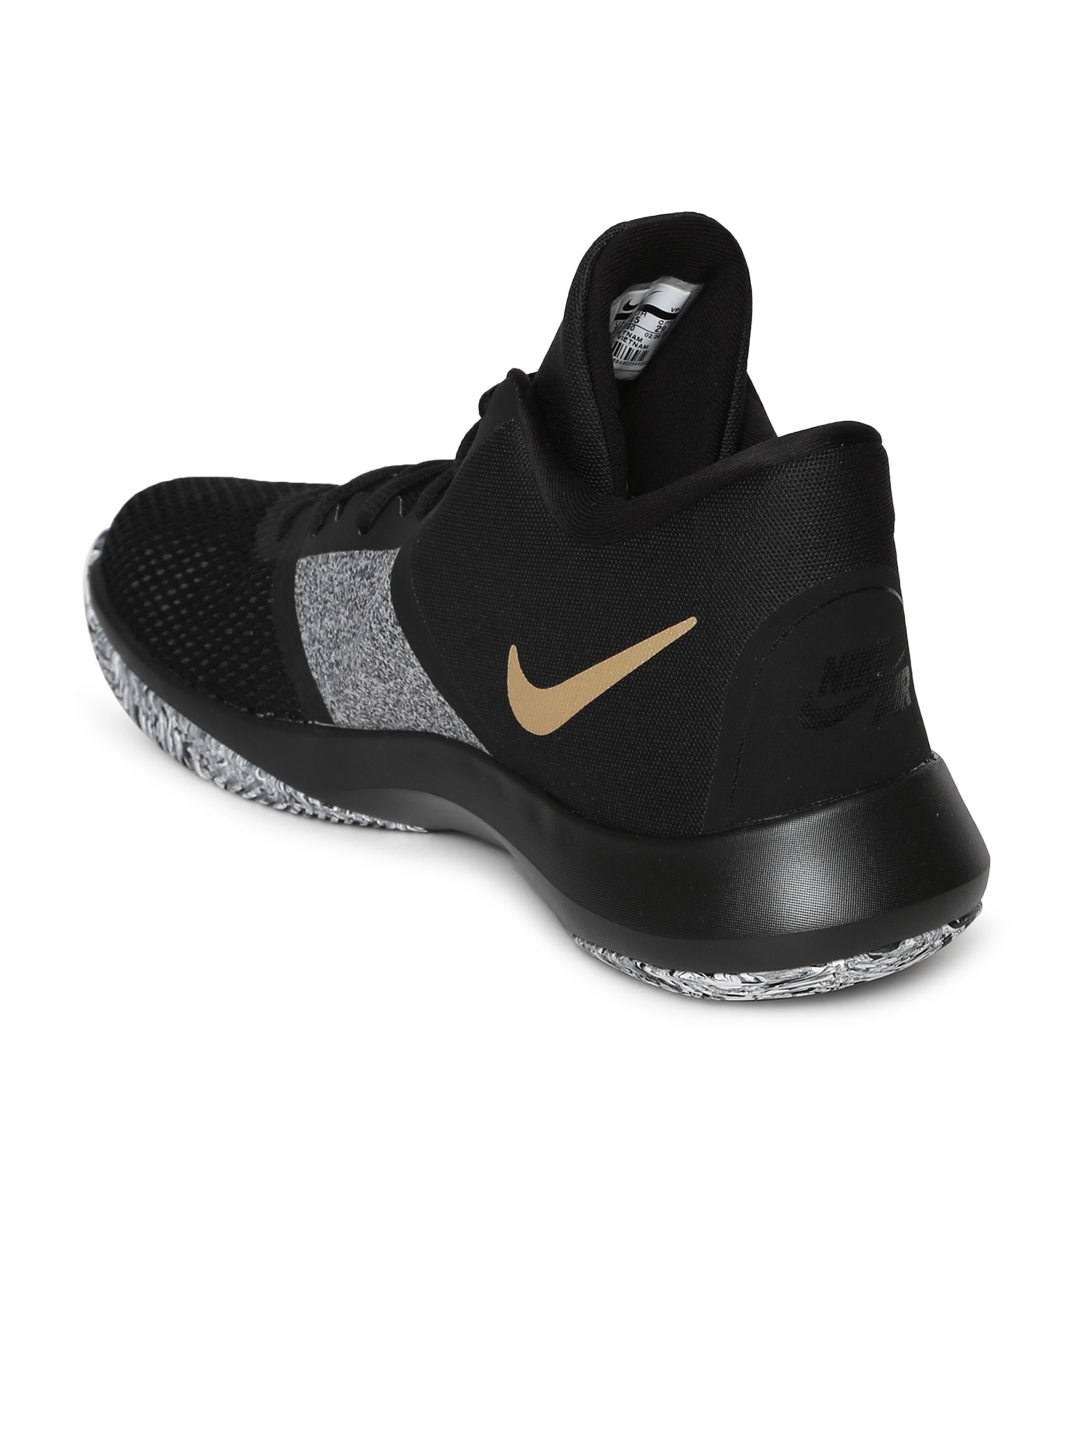 sports shoes 7e6a5 7a19a Nike Men Black Air Precision II Basketball Shoes